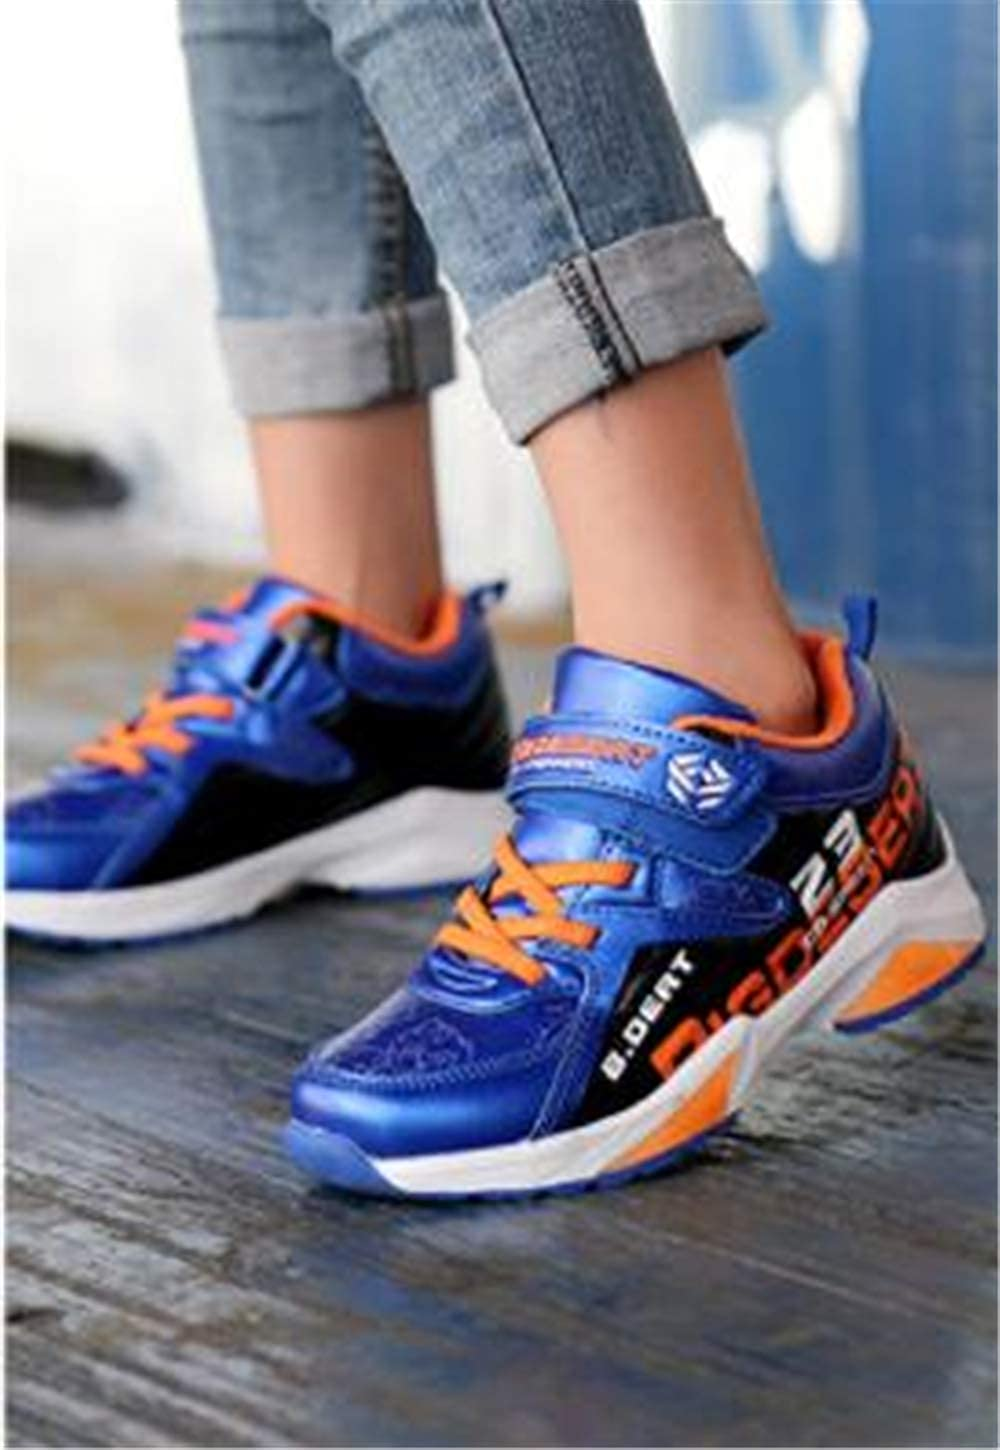 Sunny Day Boy Leather Waterproof Non-Slip Comfortable Sneakers